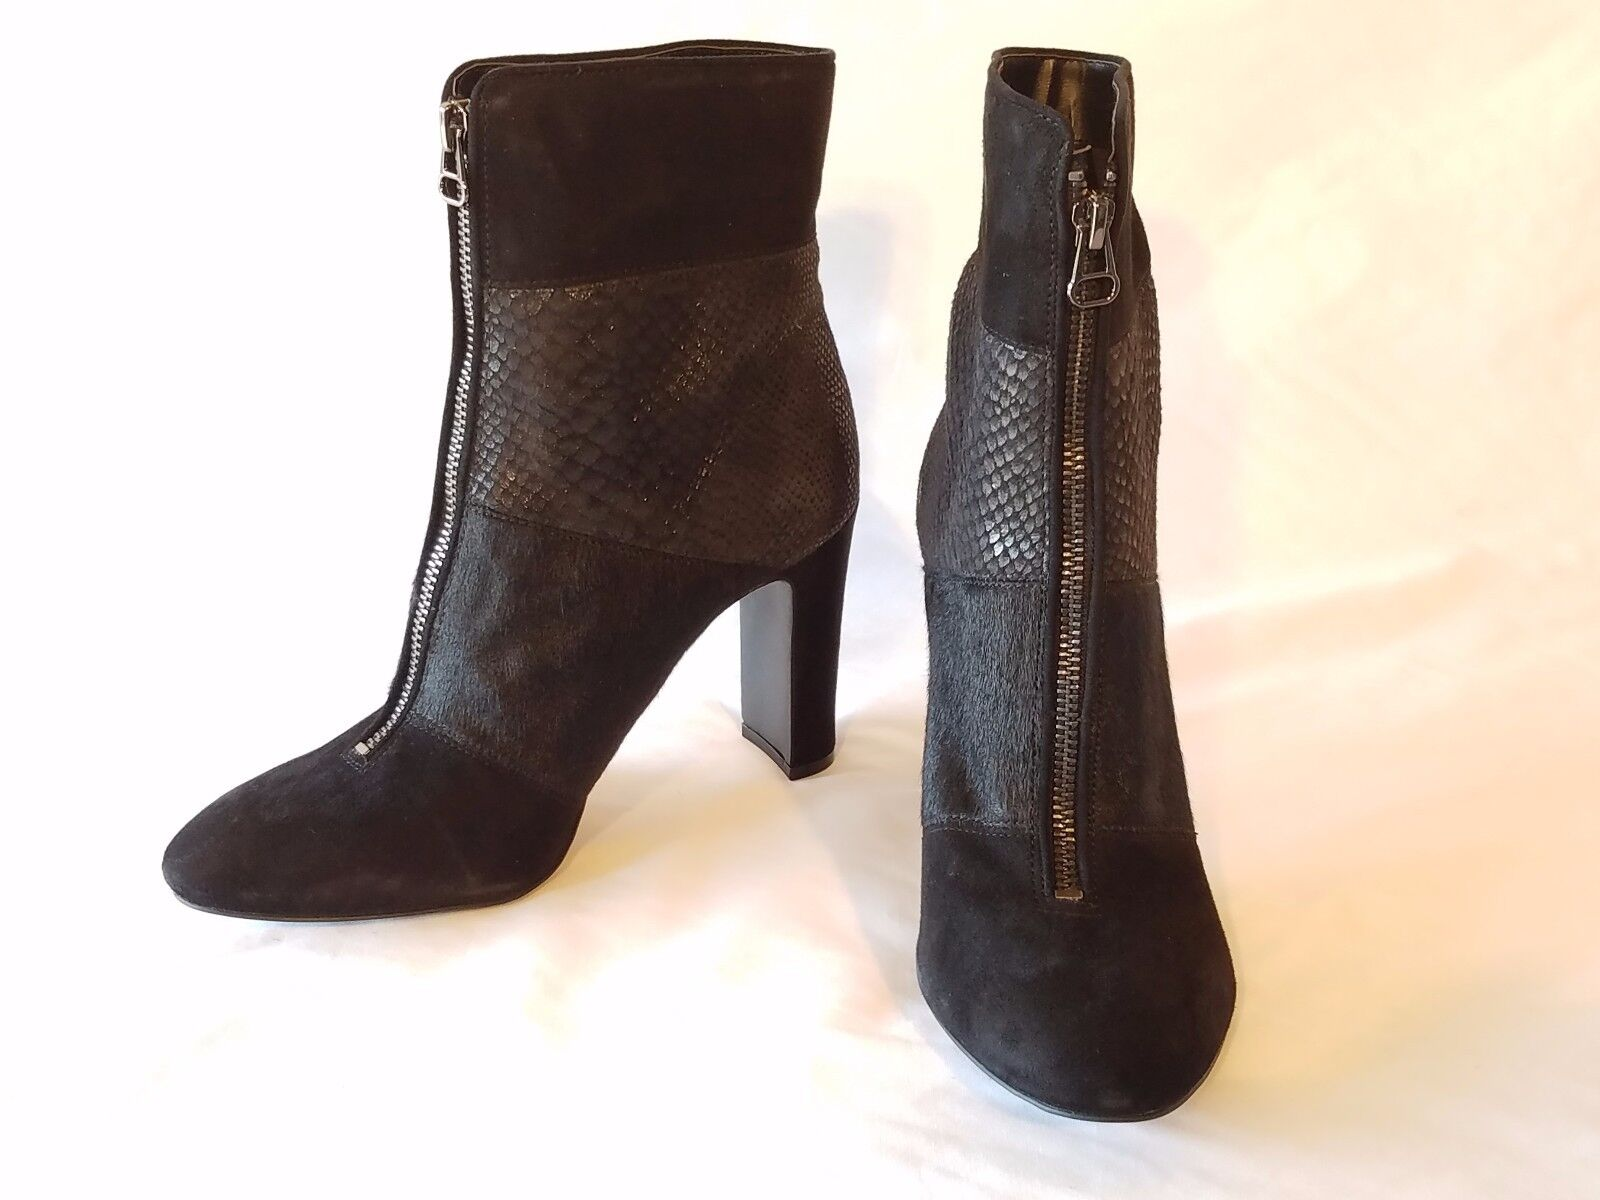 """Anne Klein Black Leather & Suede Almond Toe Ankle Bootie Size 9M 3.75"""" Block Hee"""